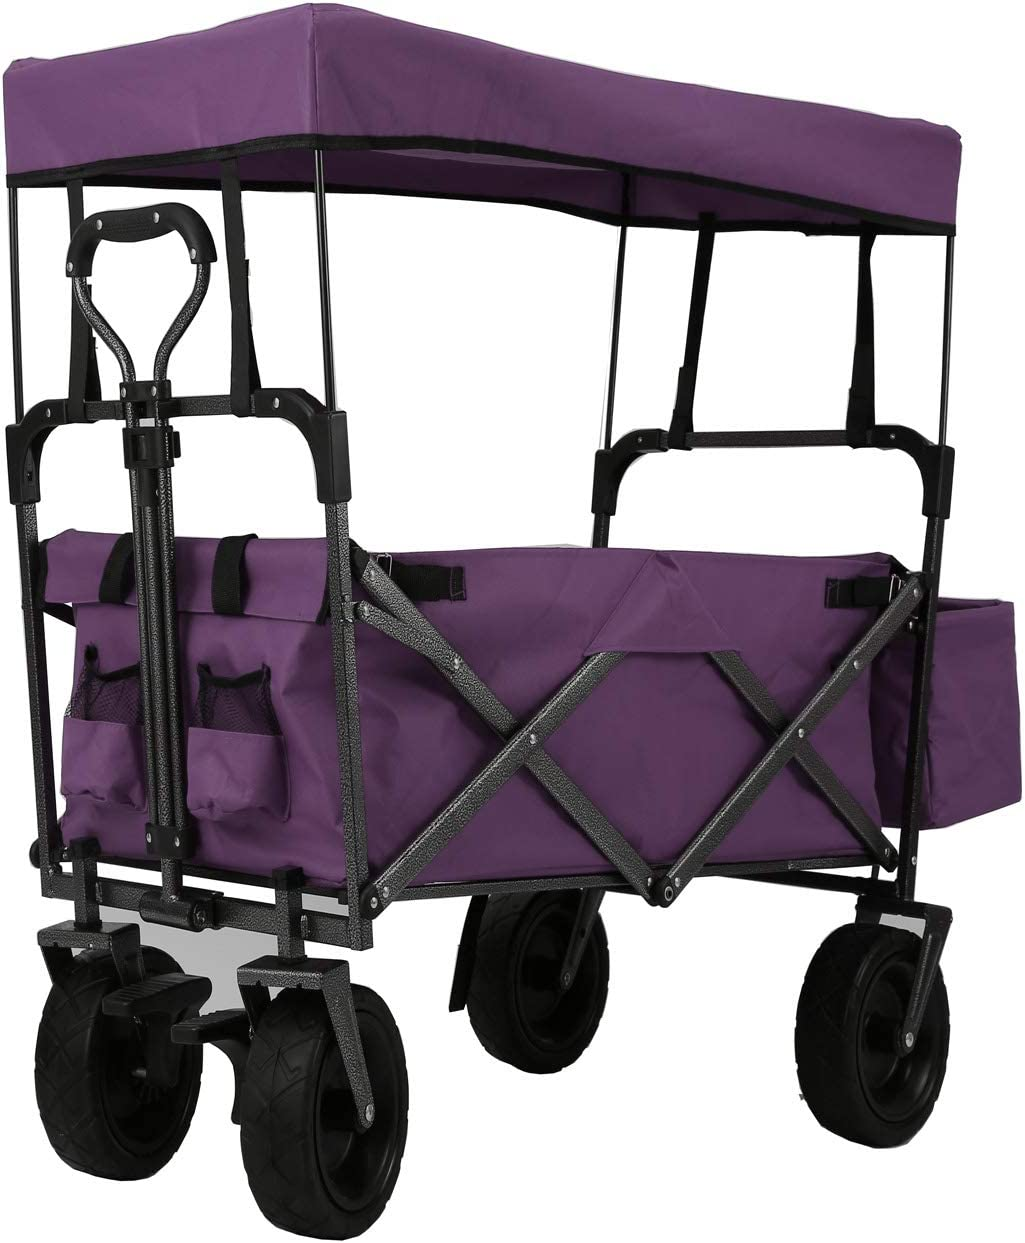 Easy Setup NO Tool Needed Free Carrying Bag Purple EXTEC Folding Stroller Wagon Collapsible with Canopy Outdoor Sport Baby Trolley Garden Utility Shopping Travel Beach Wagon//Cart